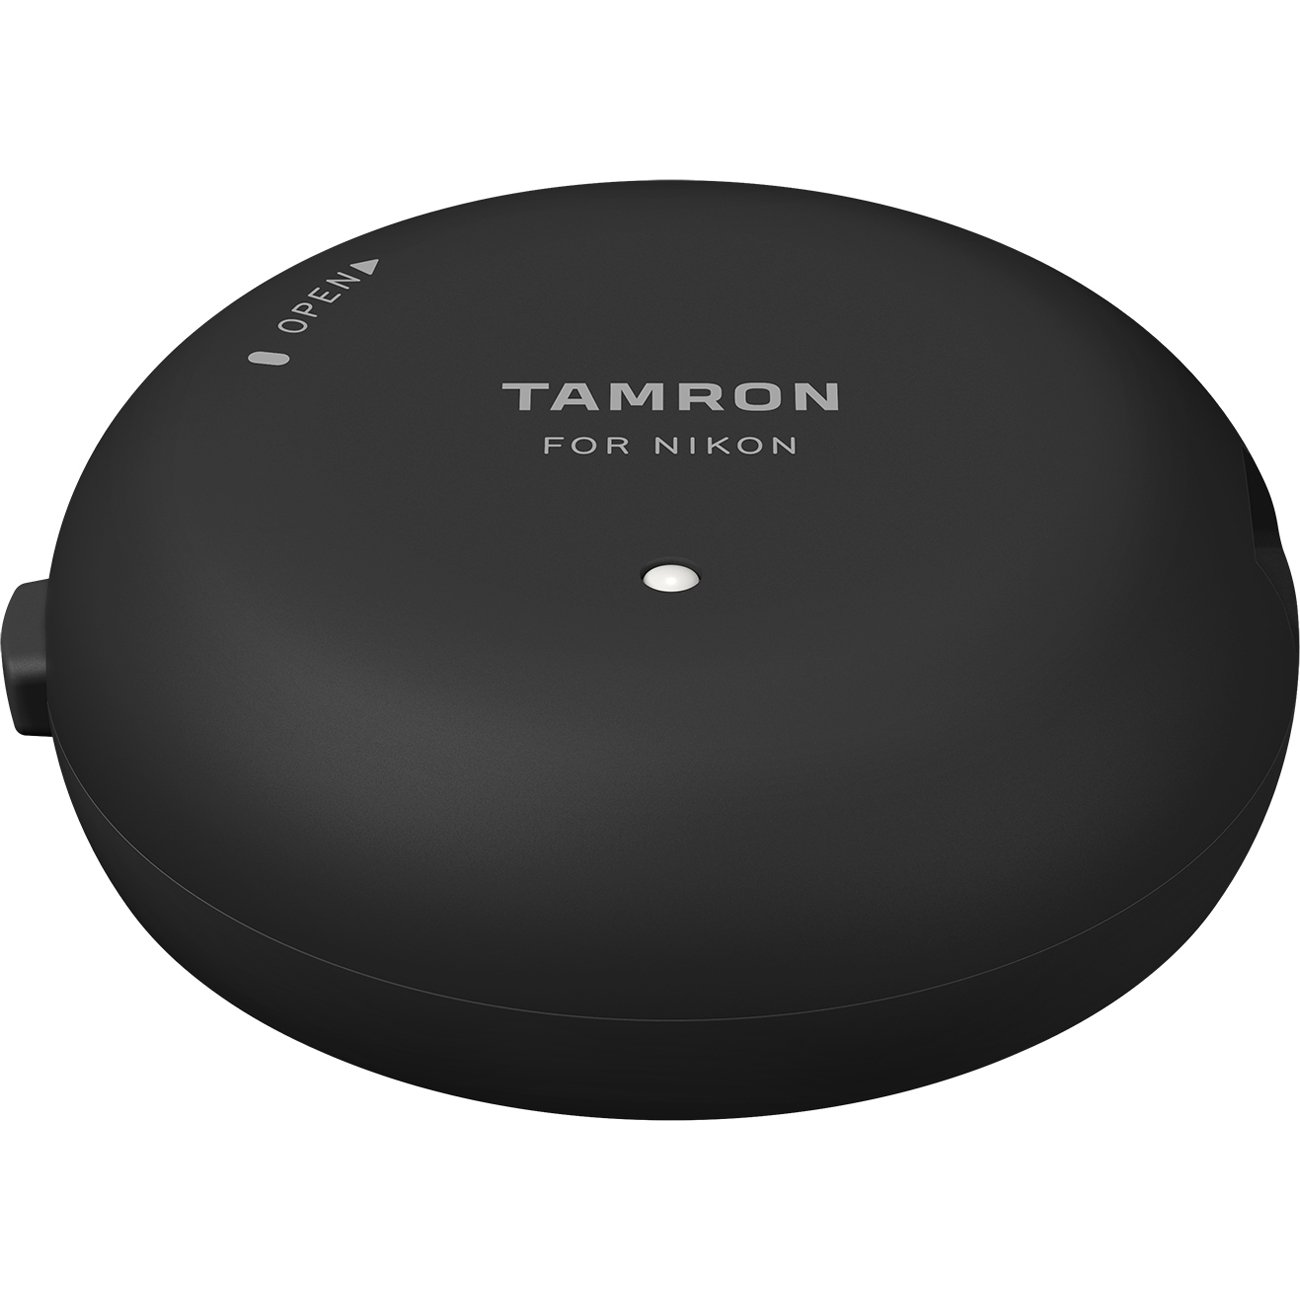 Tamron Tap-In-Console For Nikon, Black by Tamron